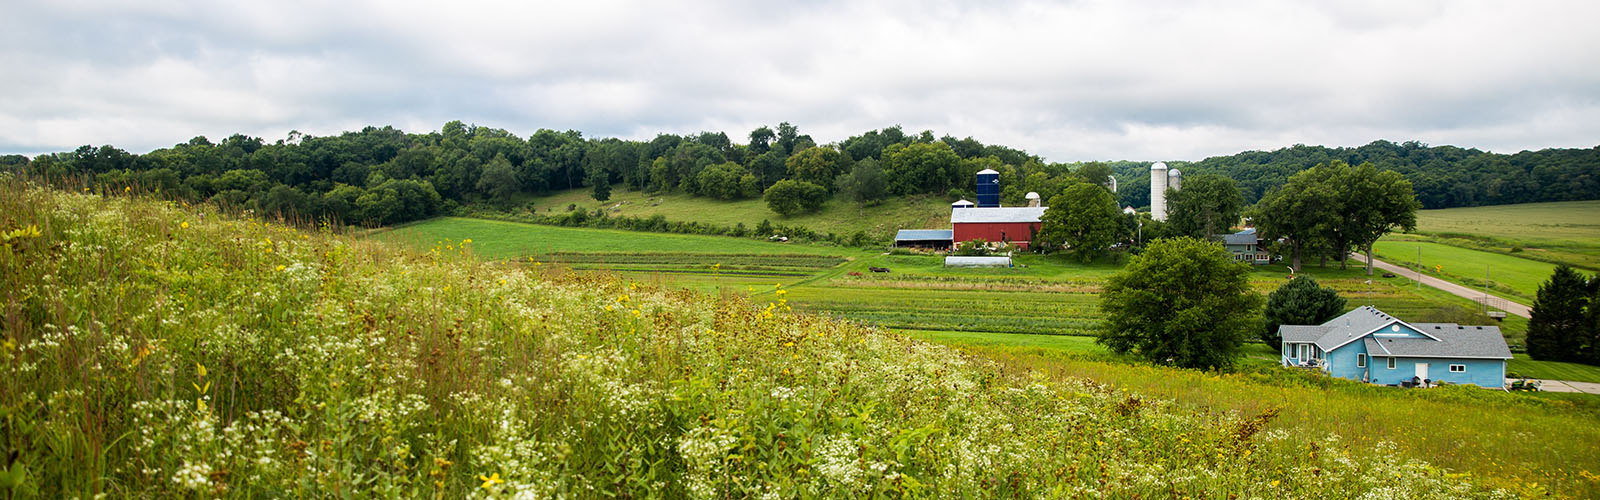 A landscape with grassland in the foreground and agricultural fields and a red barn in the back ground.